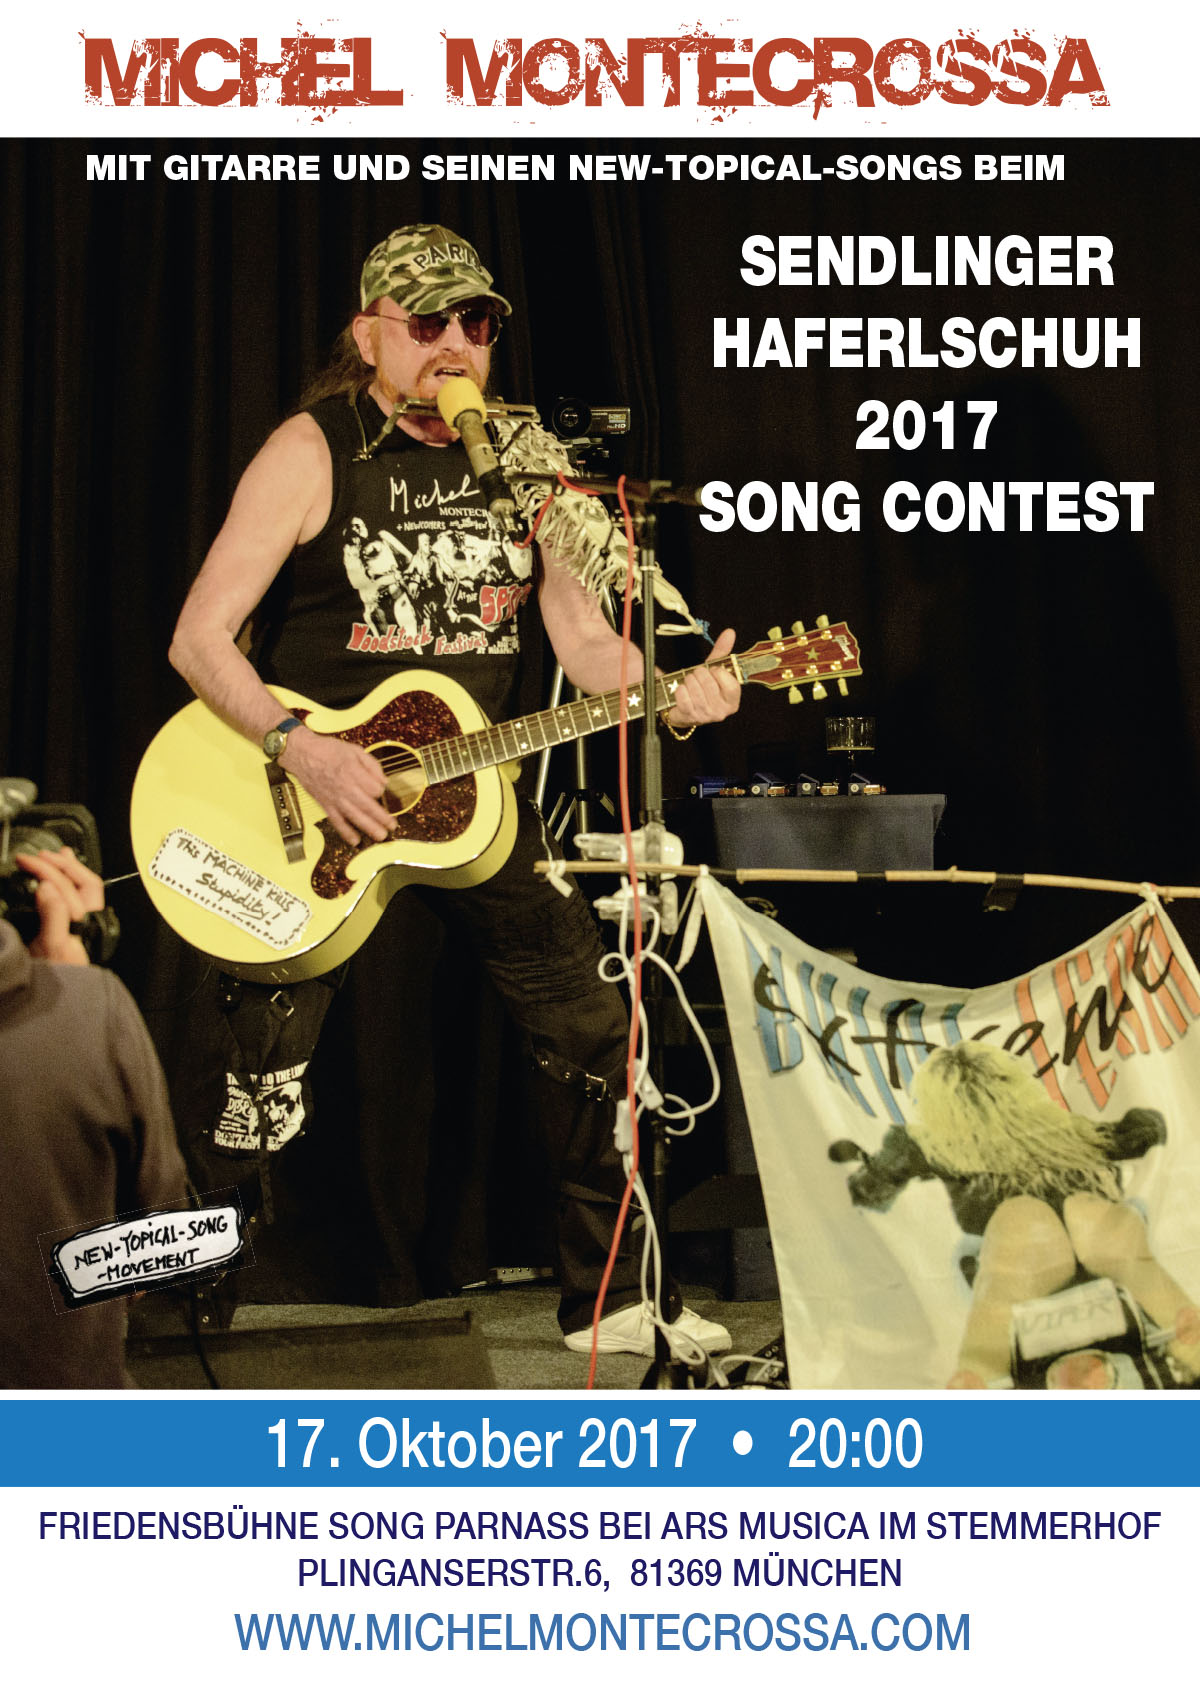 Sendlinger Haferlschuh 2017 Song Contest